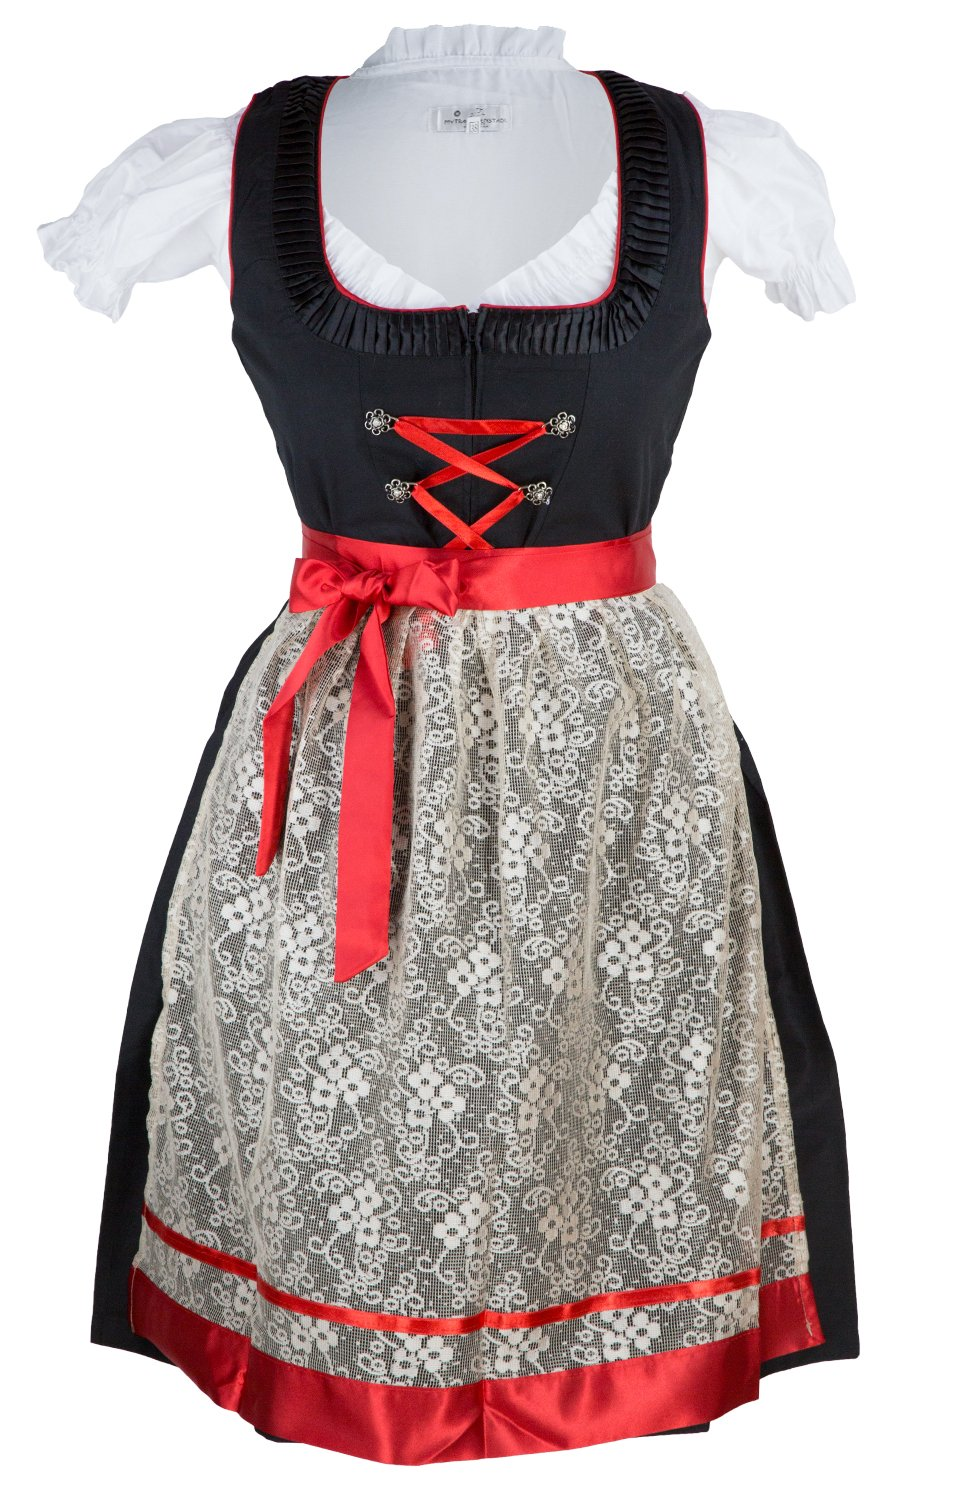 German Dirndl Women Dress in red - Black for Bavarian Oktoberfest Size 8